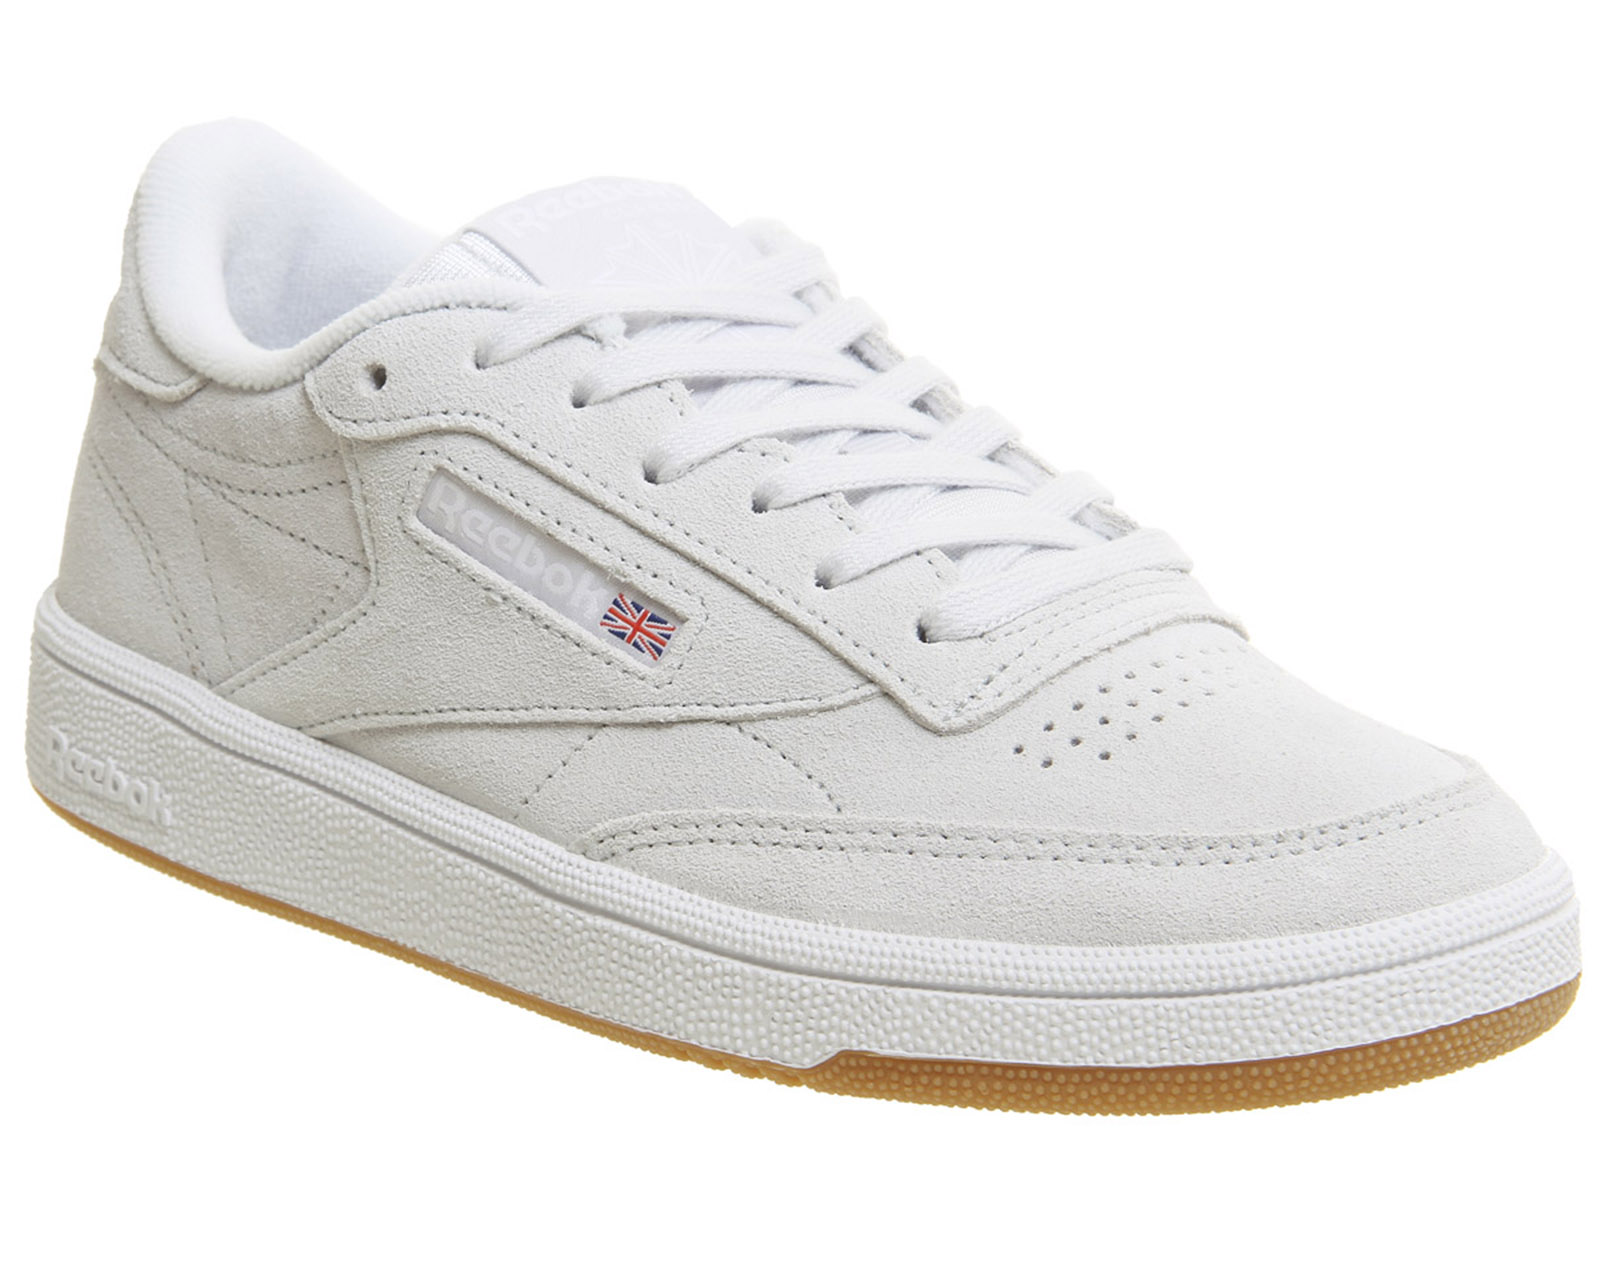 Sentinel Womens Reebok Club C 85 Trainers Spirit White White Gum Trainers  Shoes 49afae80f